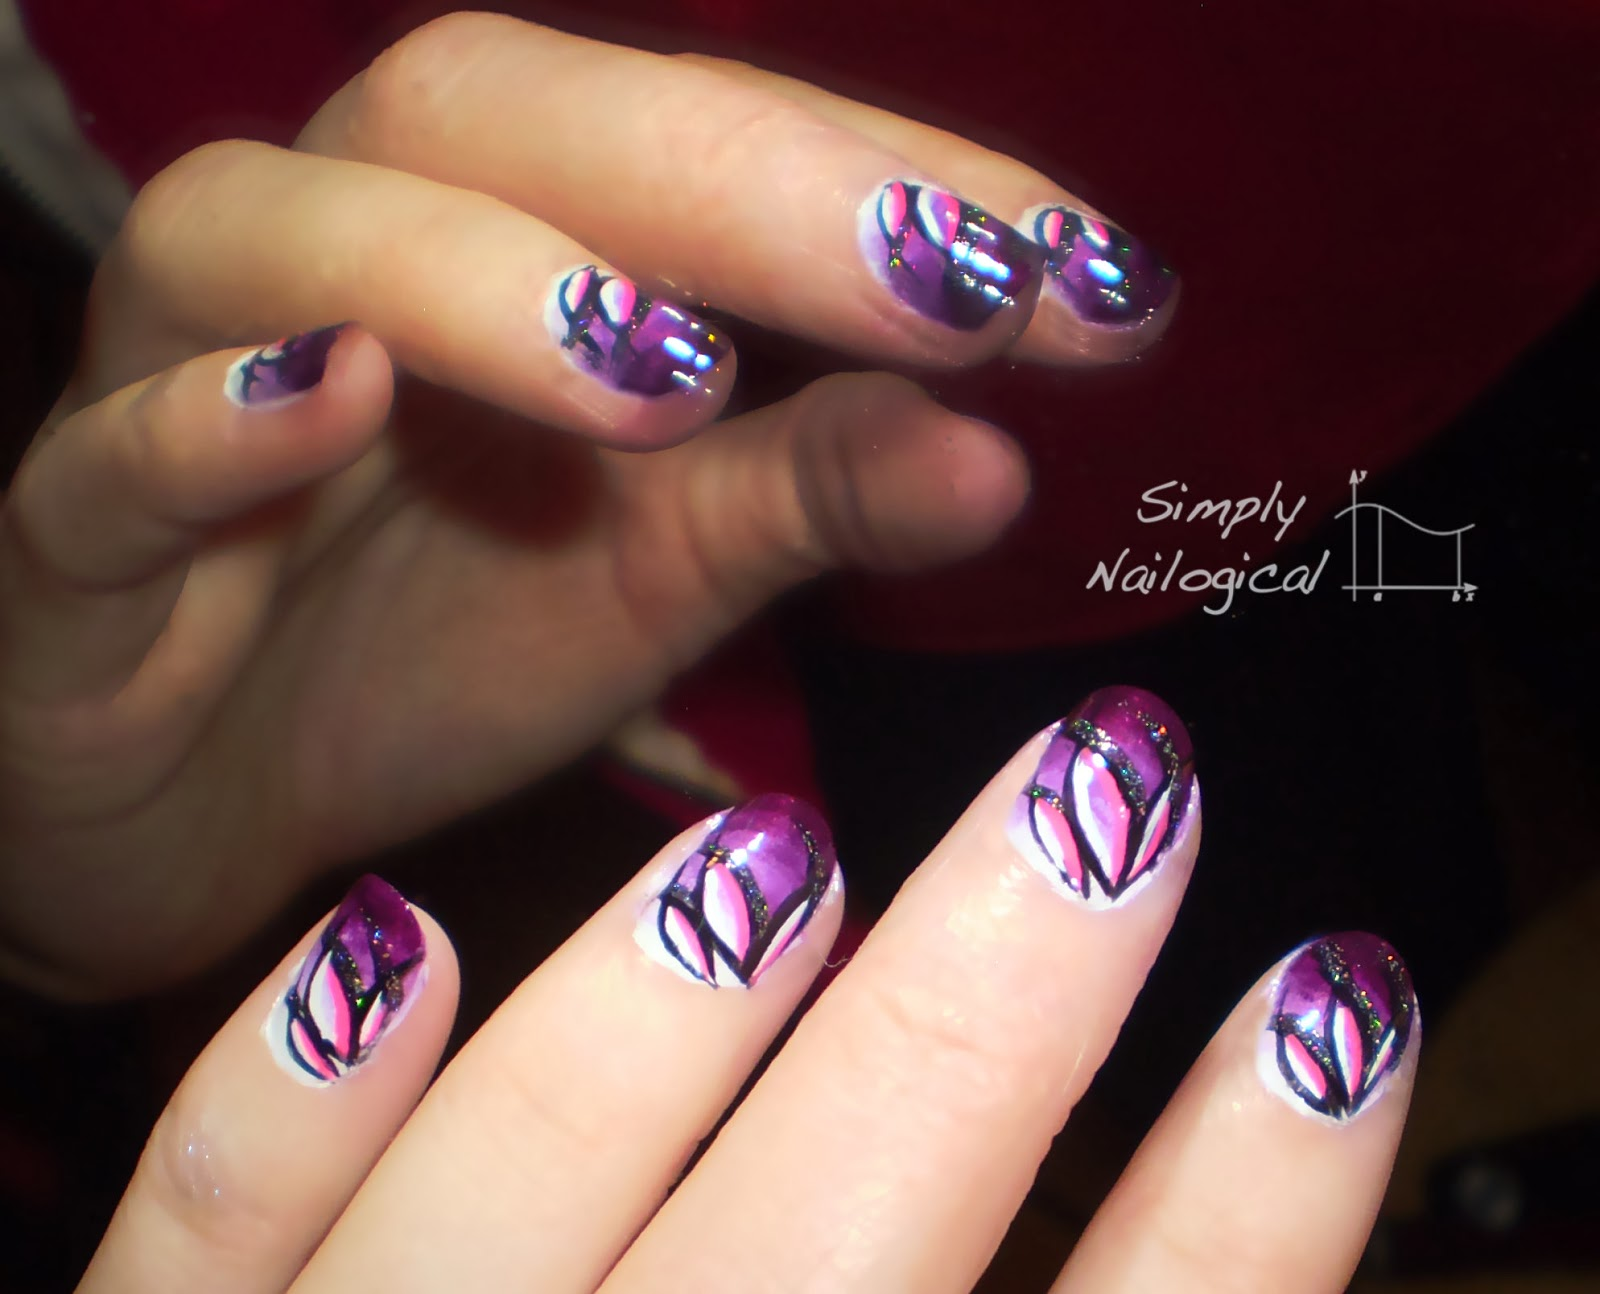 Simply nailogical gradient lotus flower archives again gradient lotus flower archives again dhlflorist Image collections